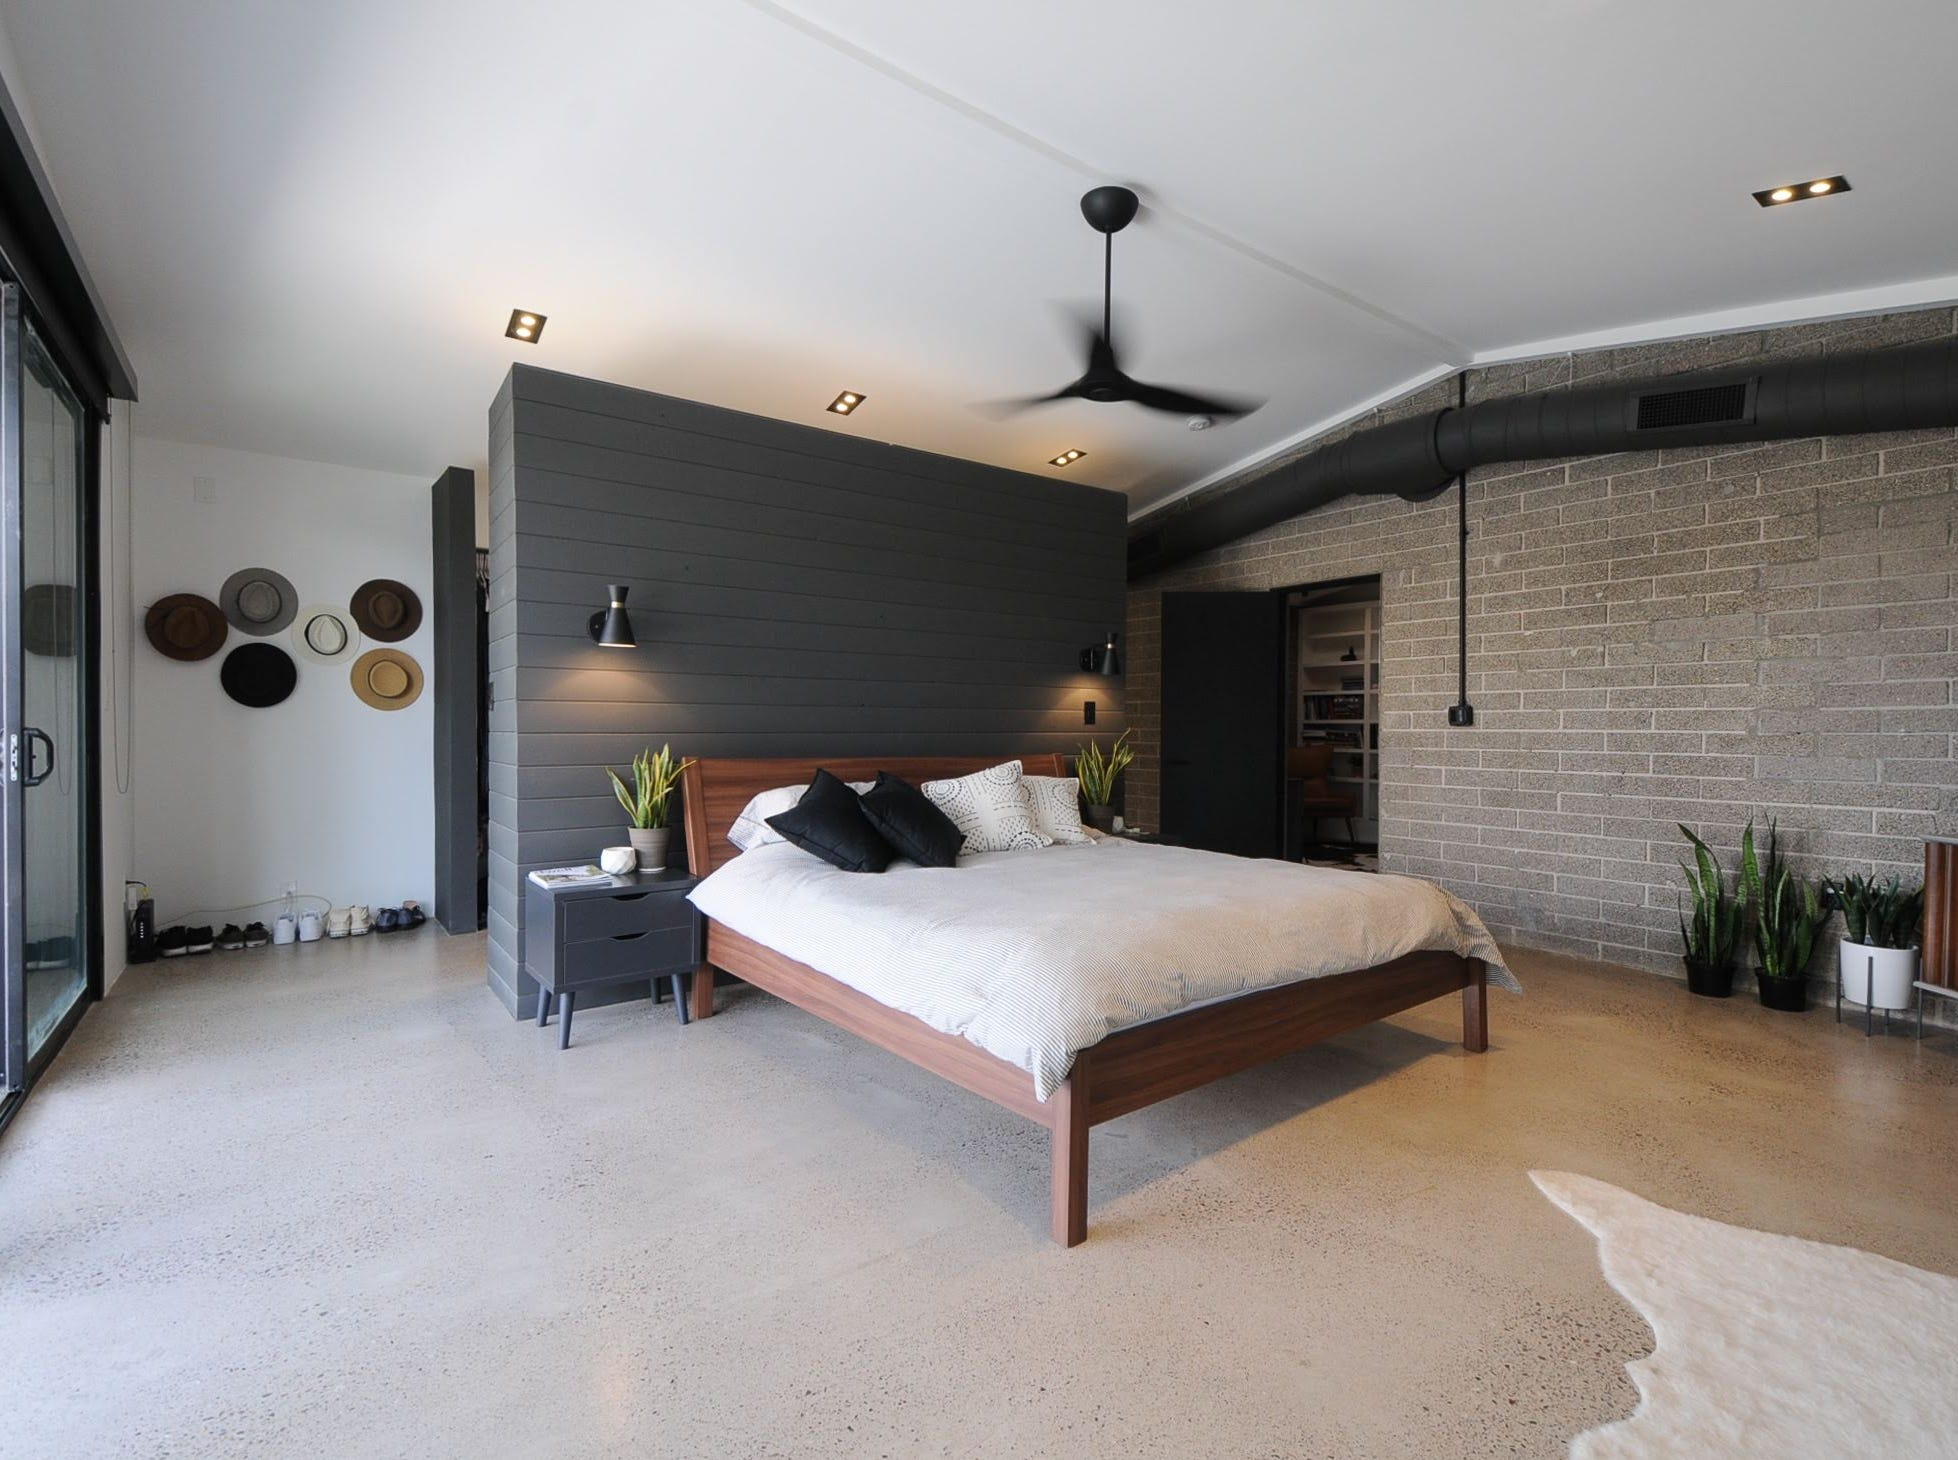 Gwilliam and Peterson's master bedroom looks nothing like the woodshed the structure once was, and instead gives an industrial feel with its concrete floors and block walls.